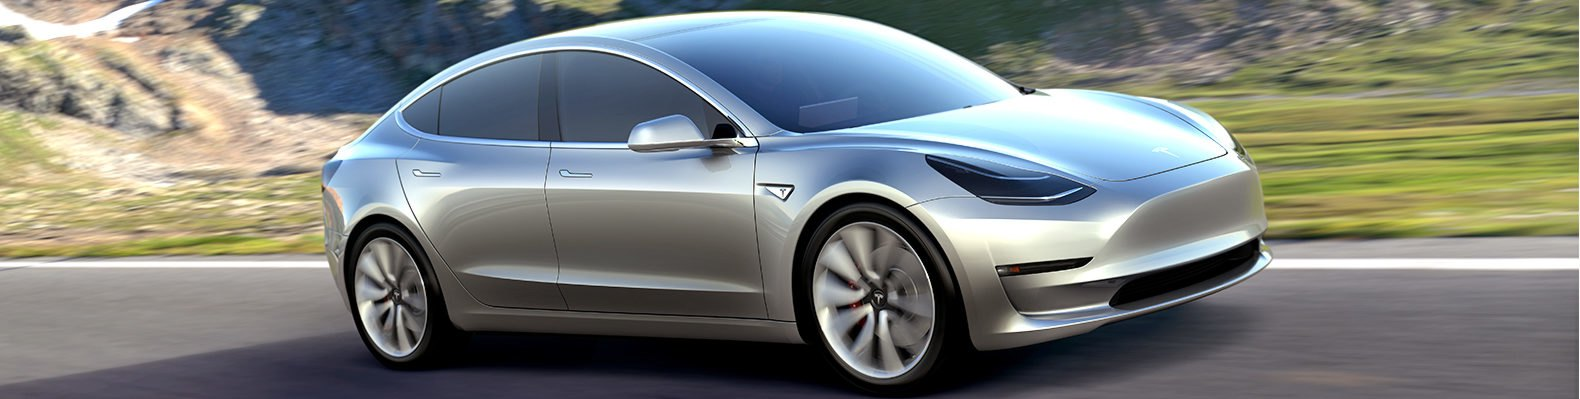 Tesla's Model 3 electric car to finally go on sale this Friday